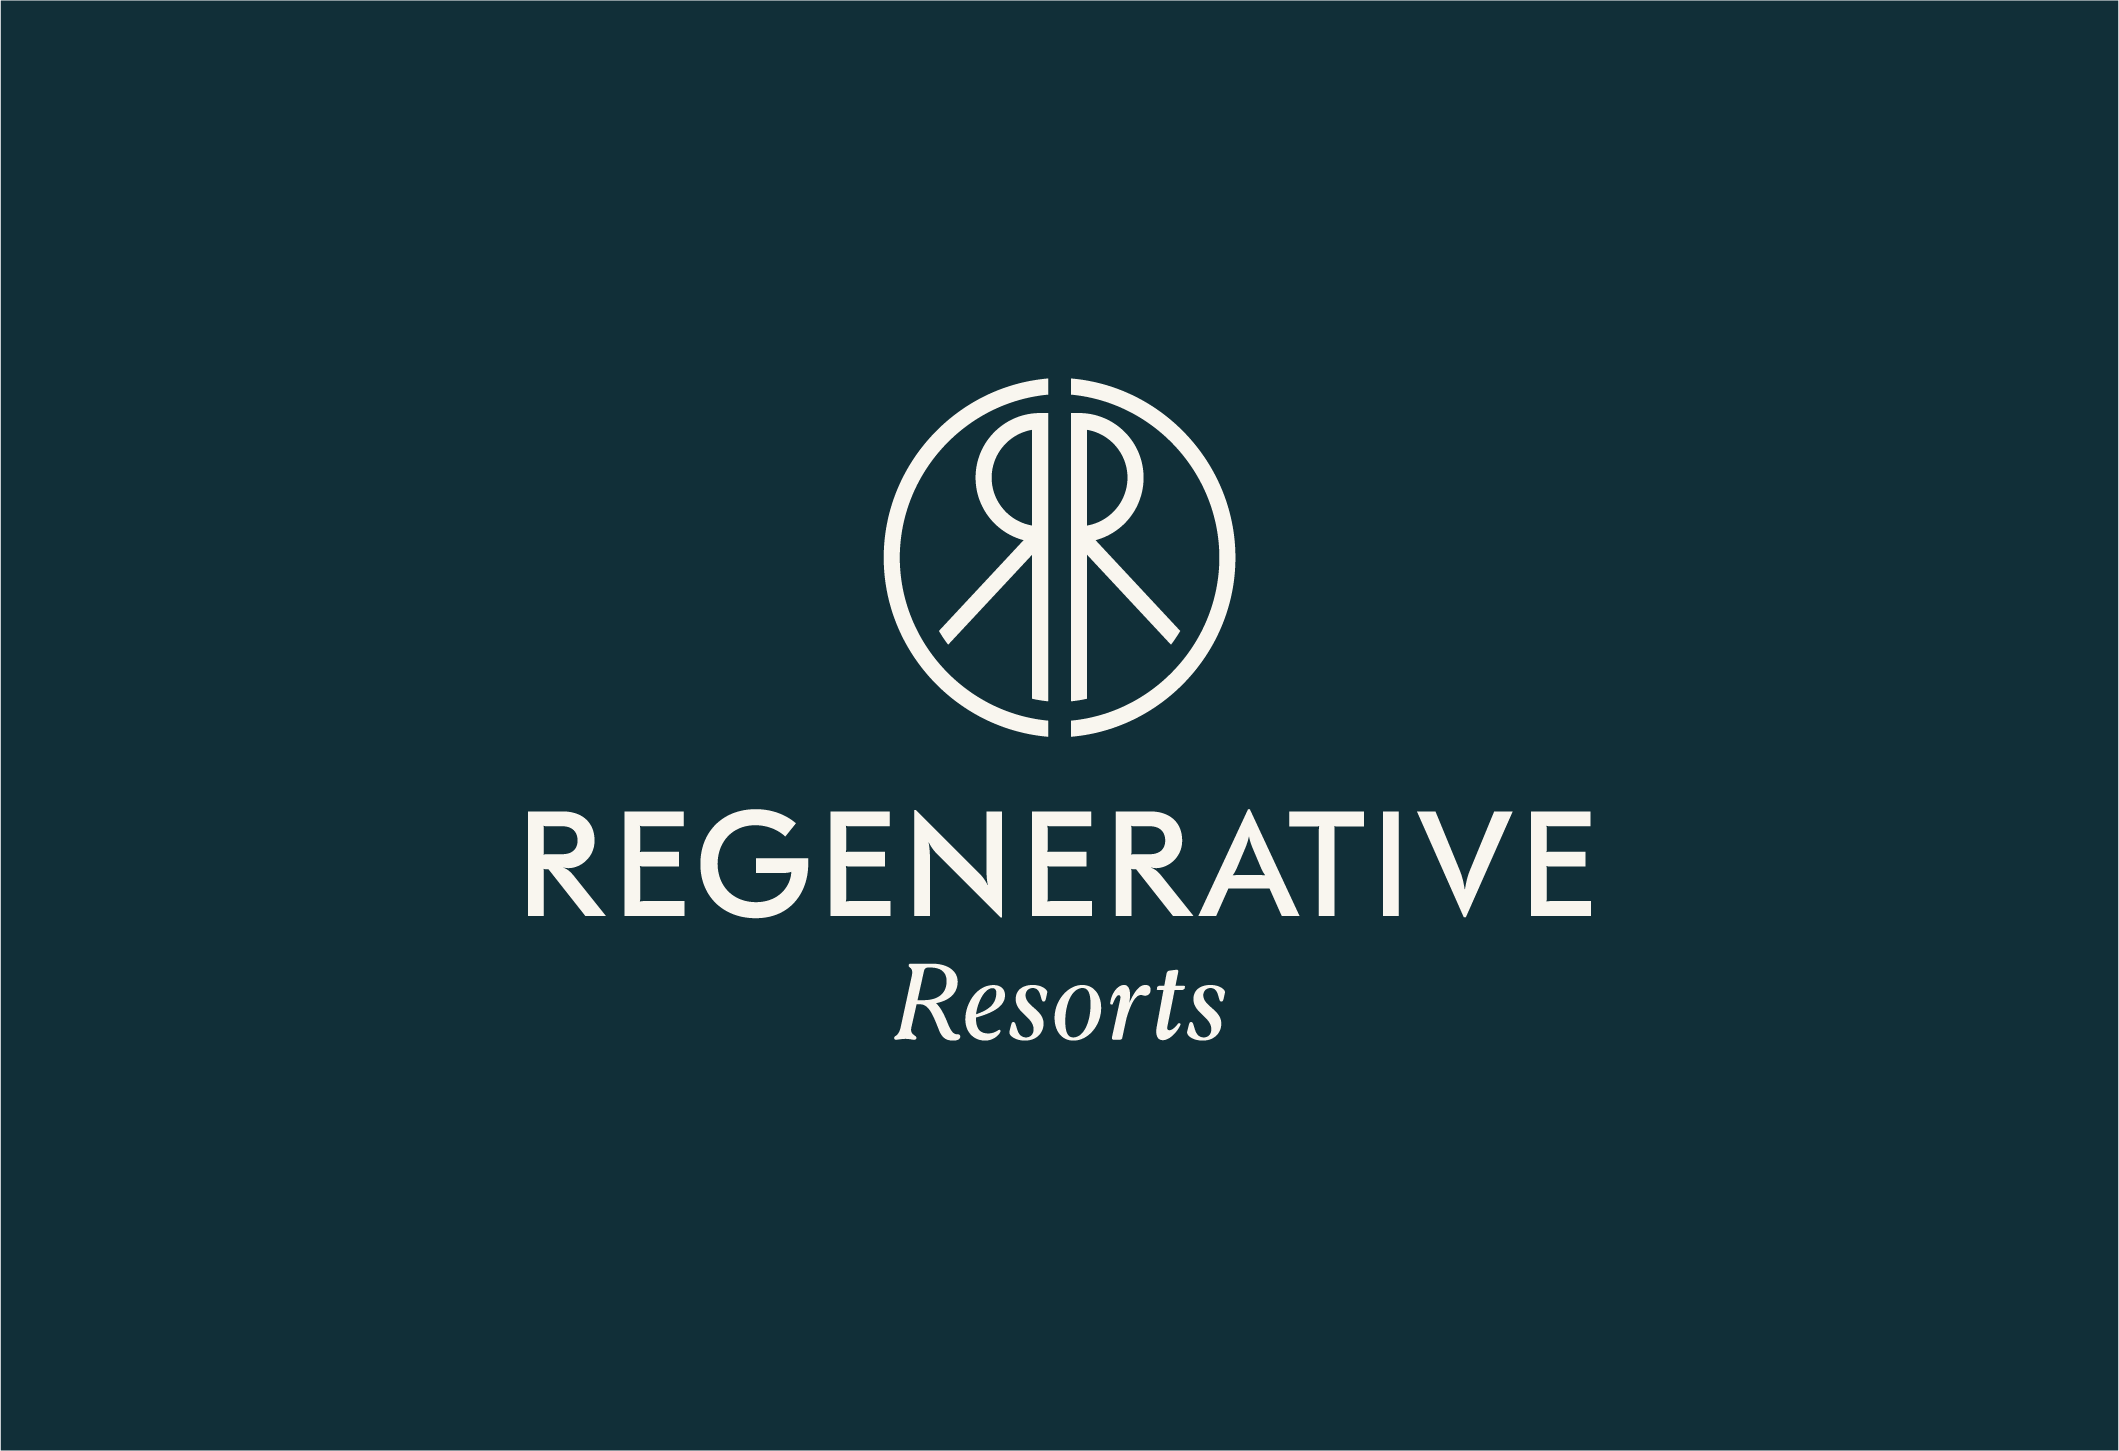 Regenerative Resorts Branding - 2019